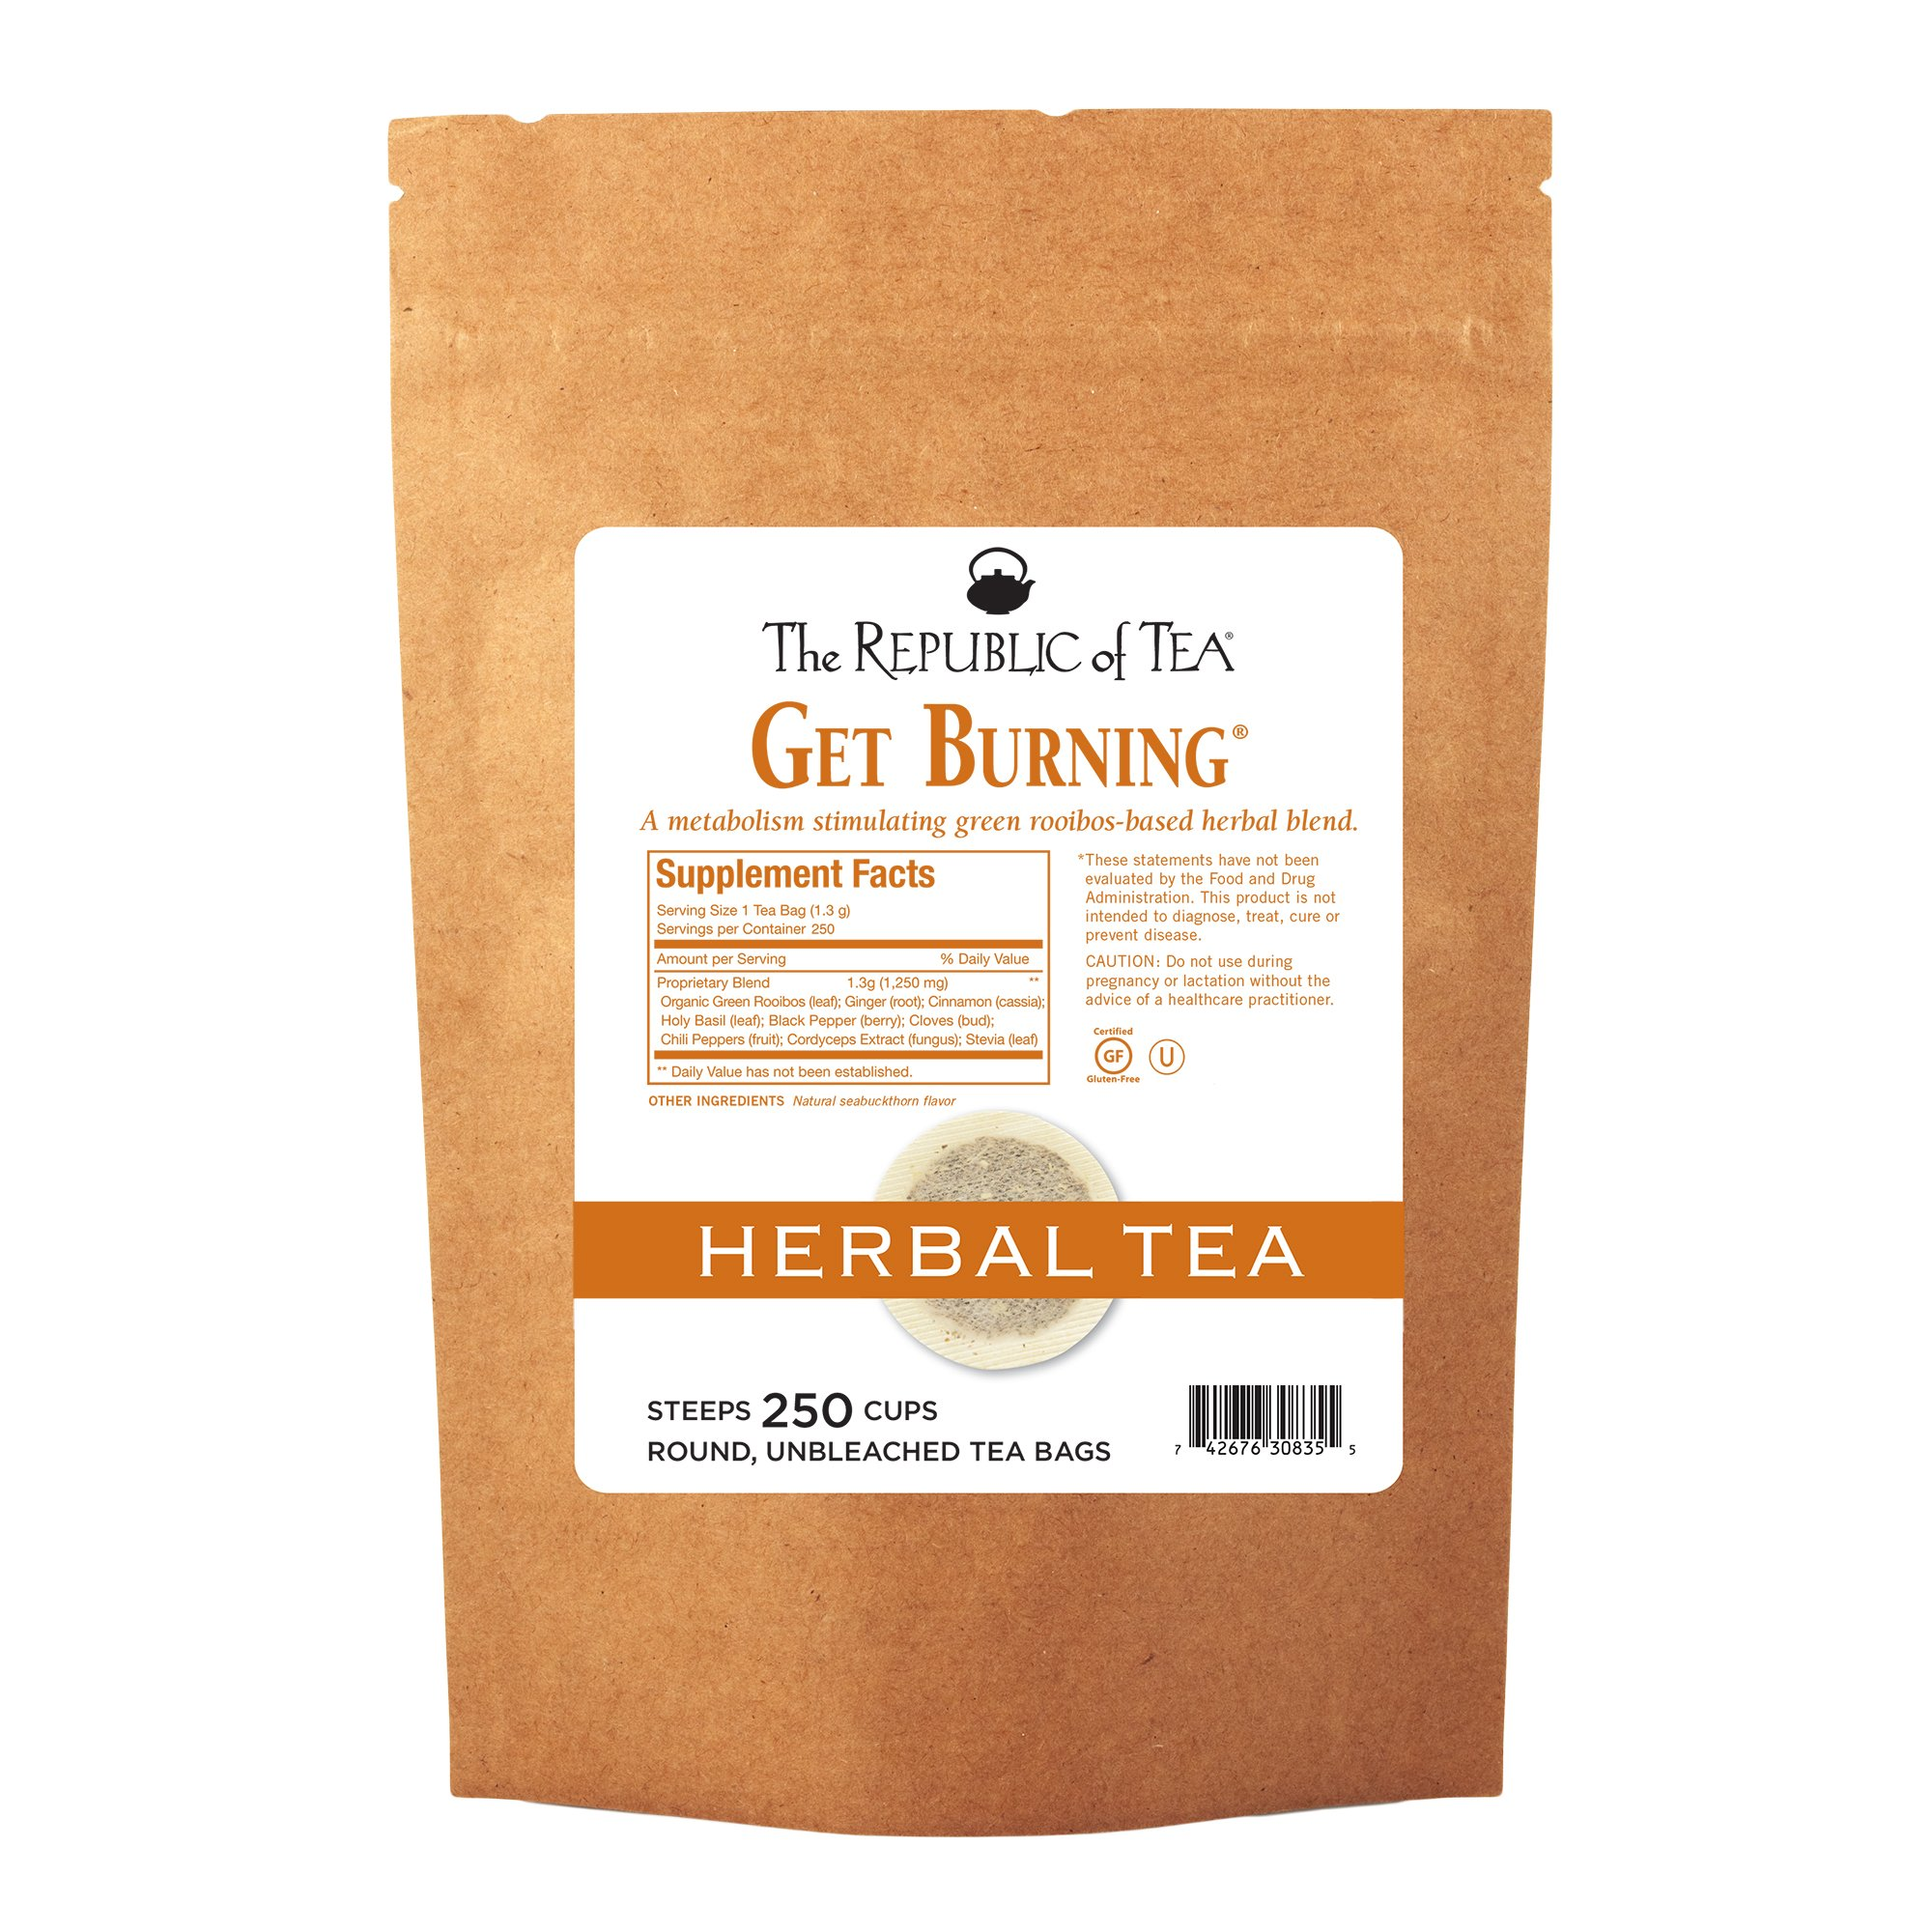 The Republic of Tea Be Active Green Rooibos Tea Get Burning - Herb Tea For Metabolism, 250 Tea Bags by The Republic of Tea